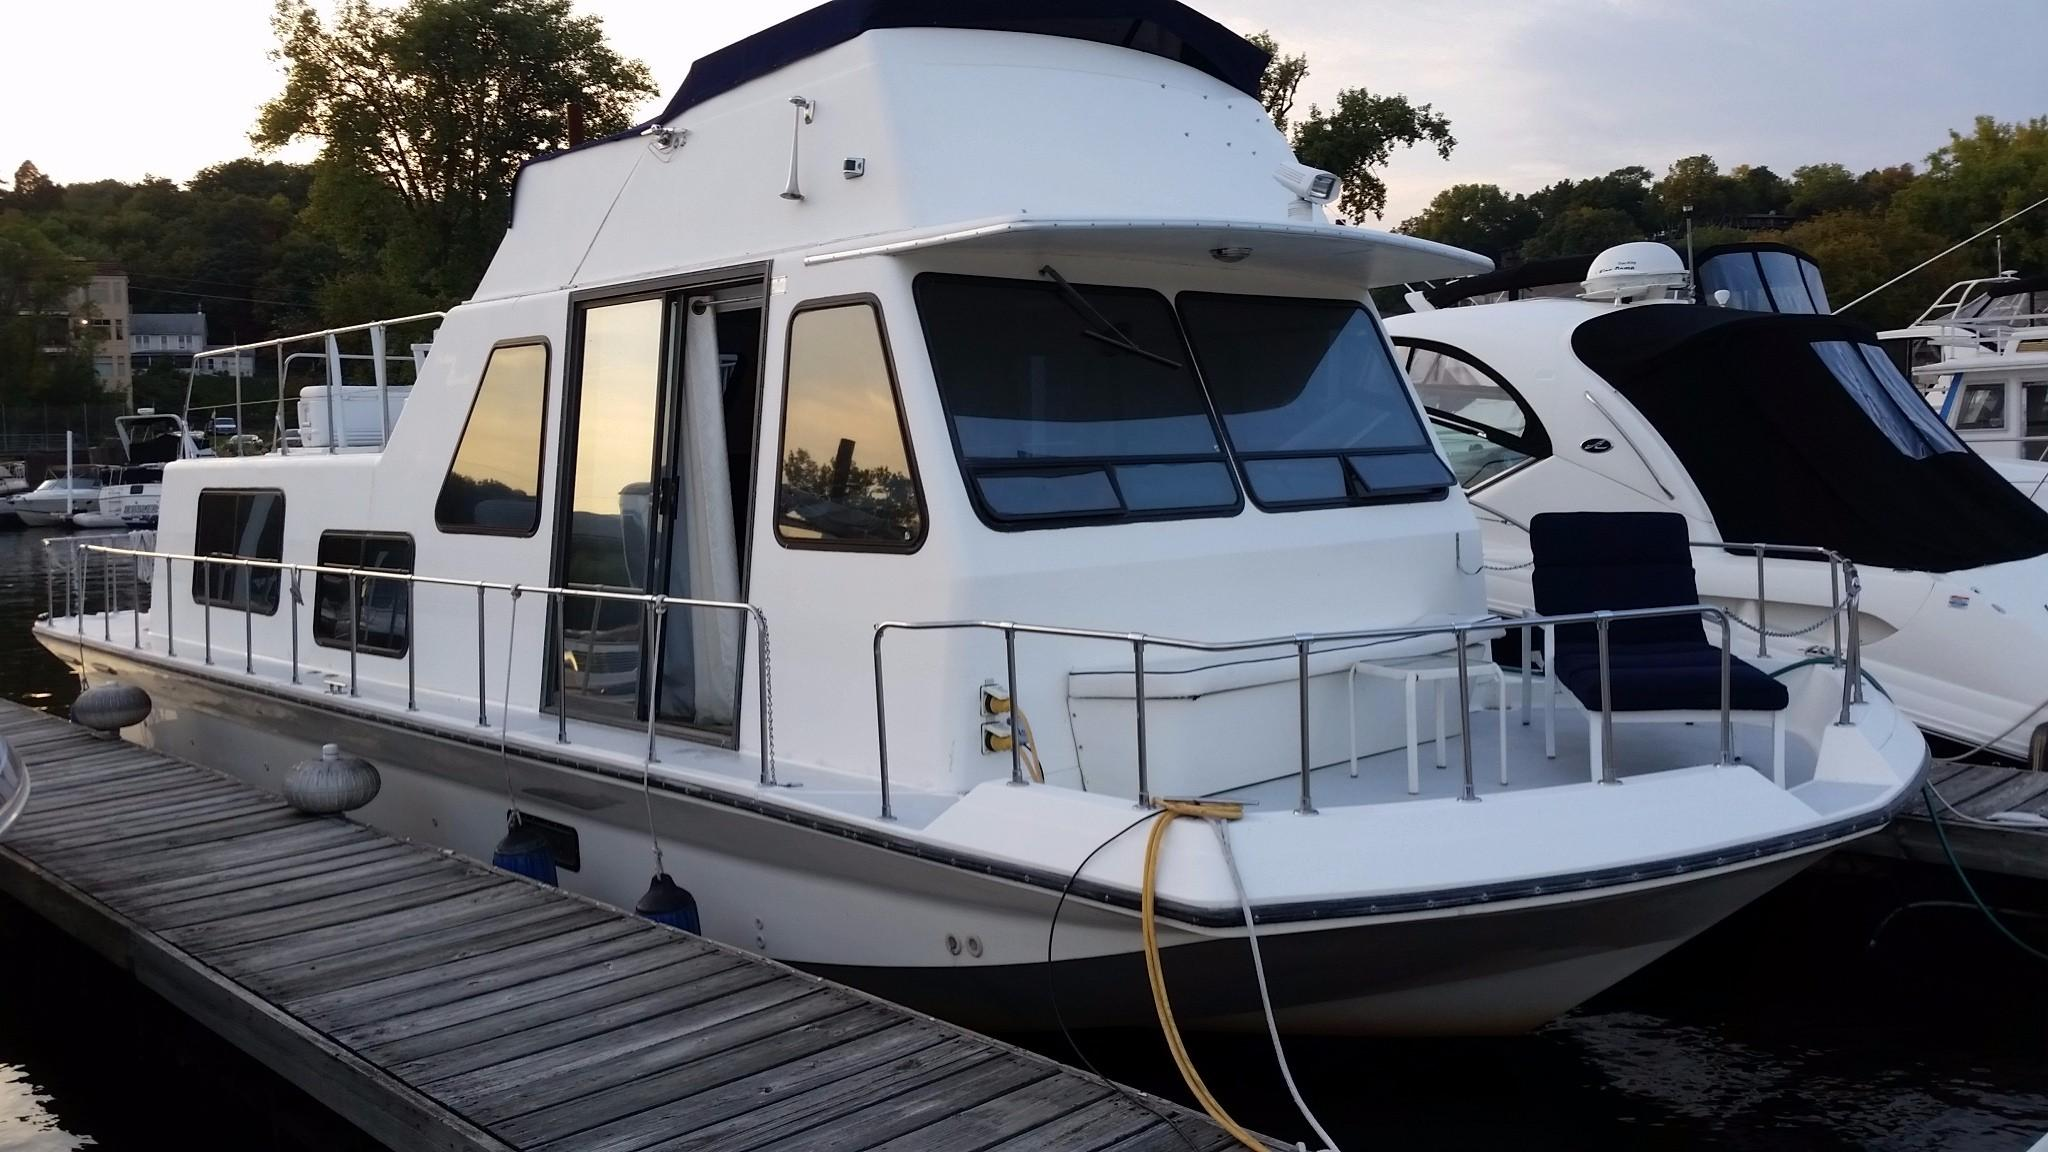 1993 Holiday Mansion Houseboat Power Boat For Sale Www